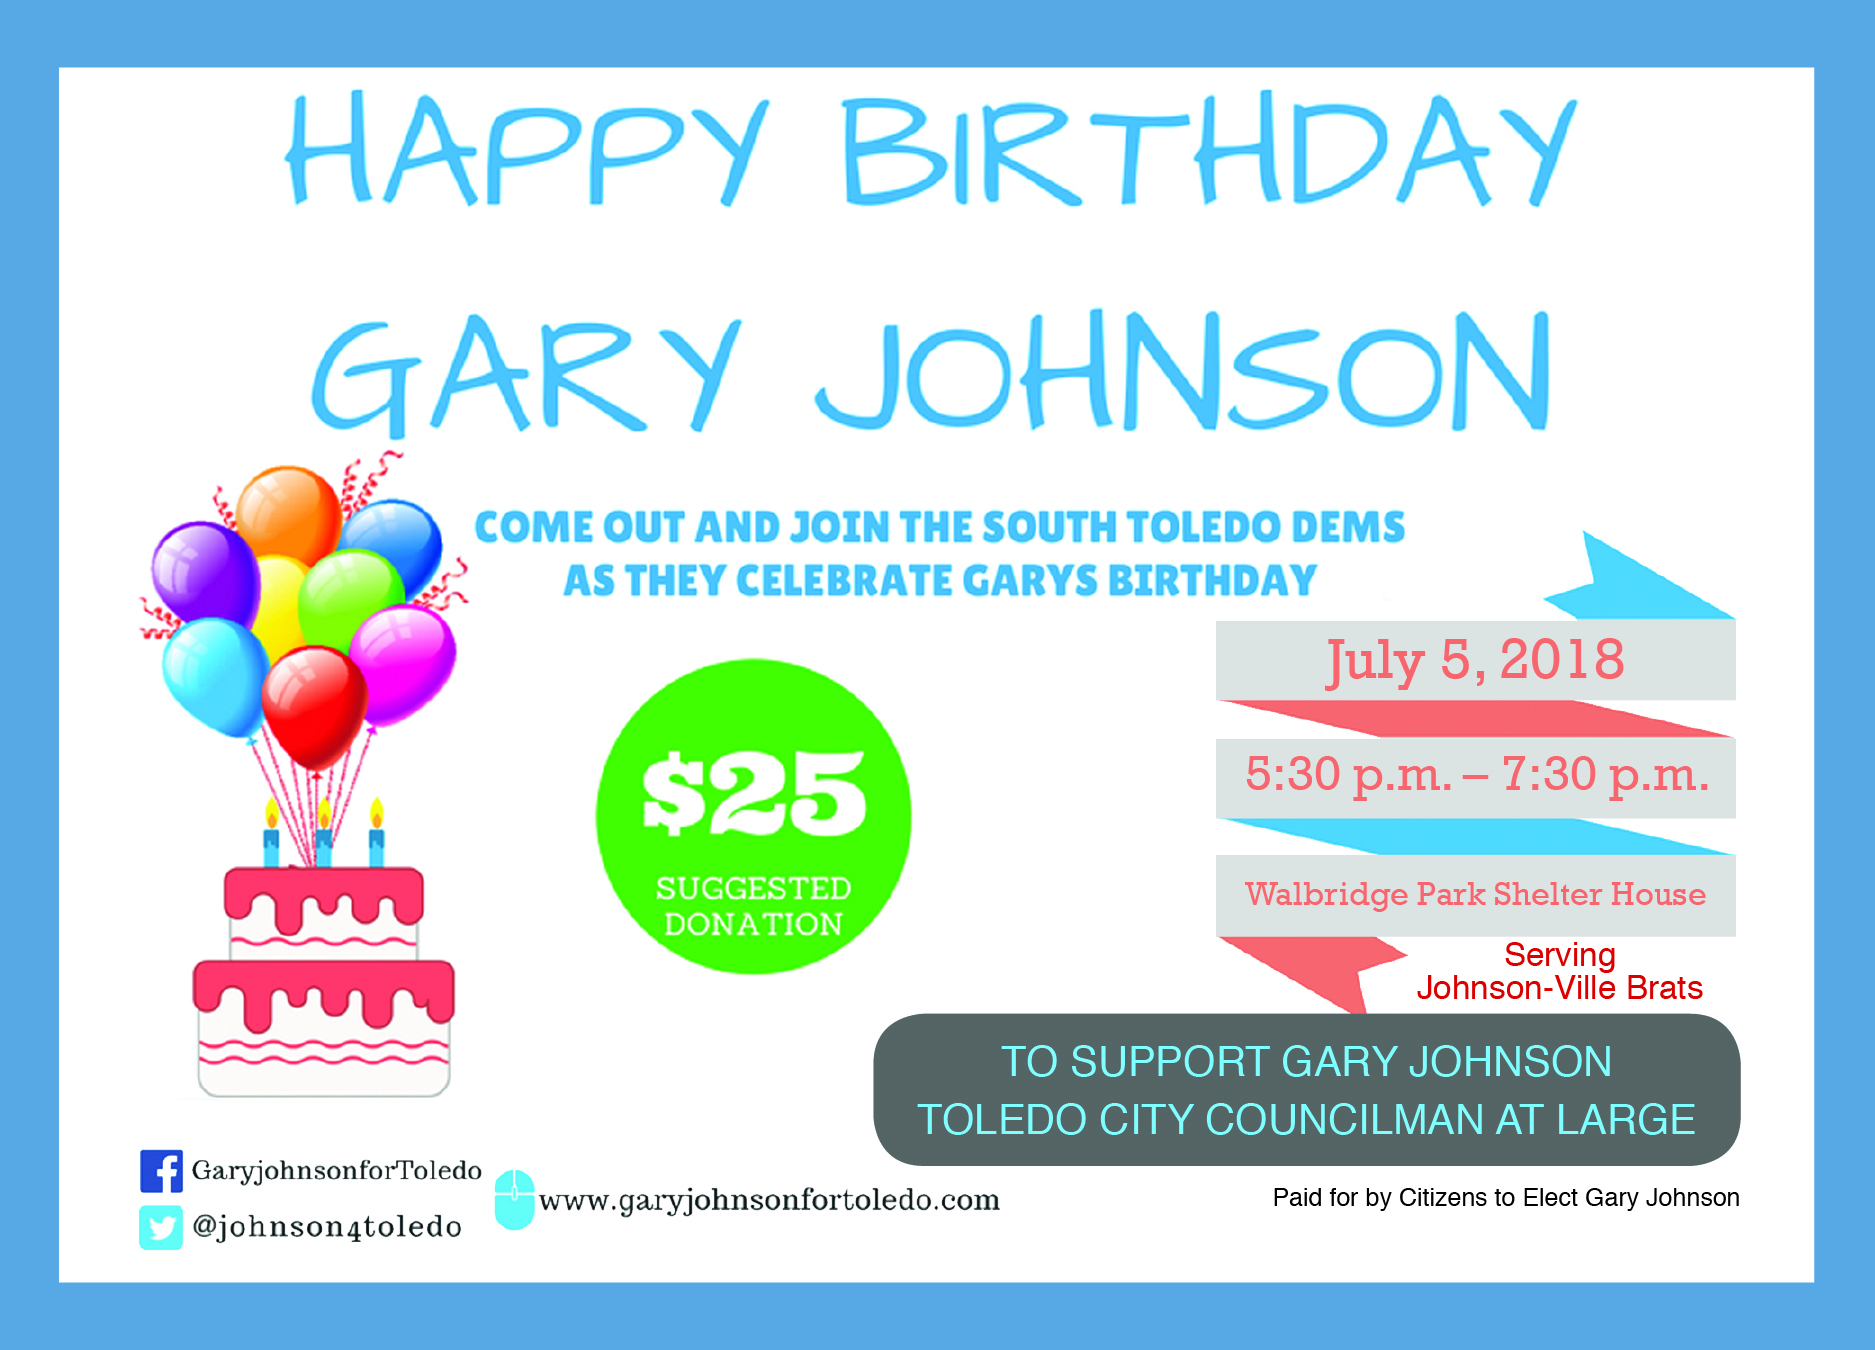 Events lucas county democratic party gary johnson birthday invitation 6 13 18 electronicg stopboris Choice Image